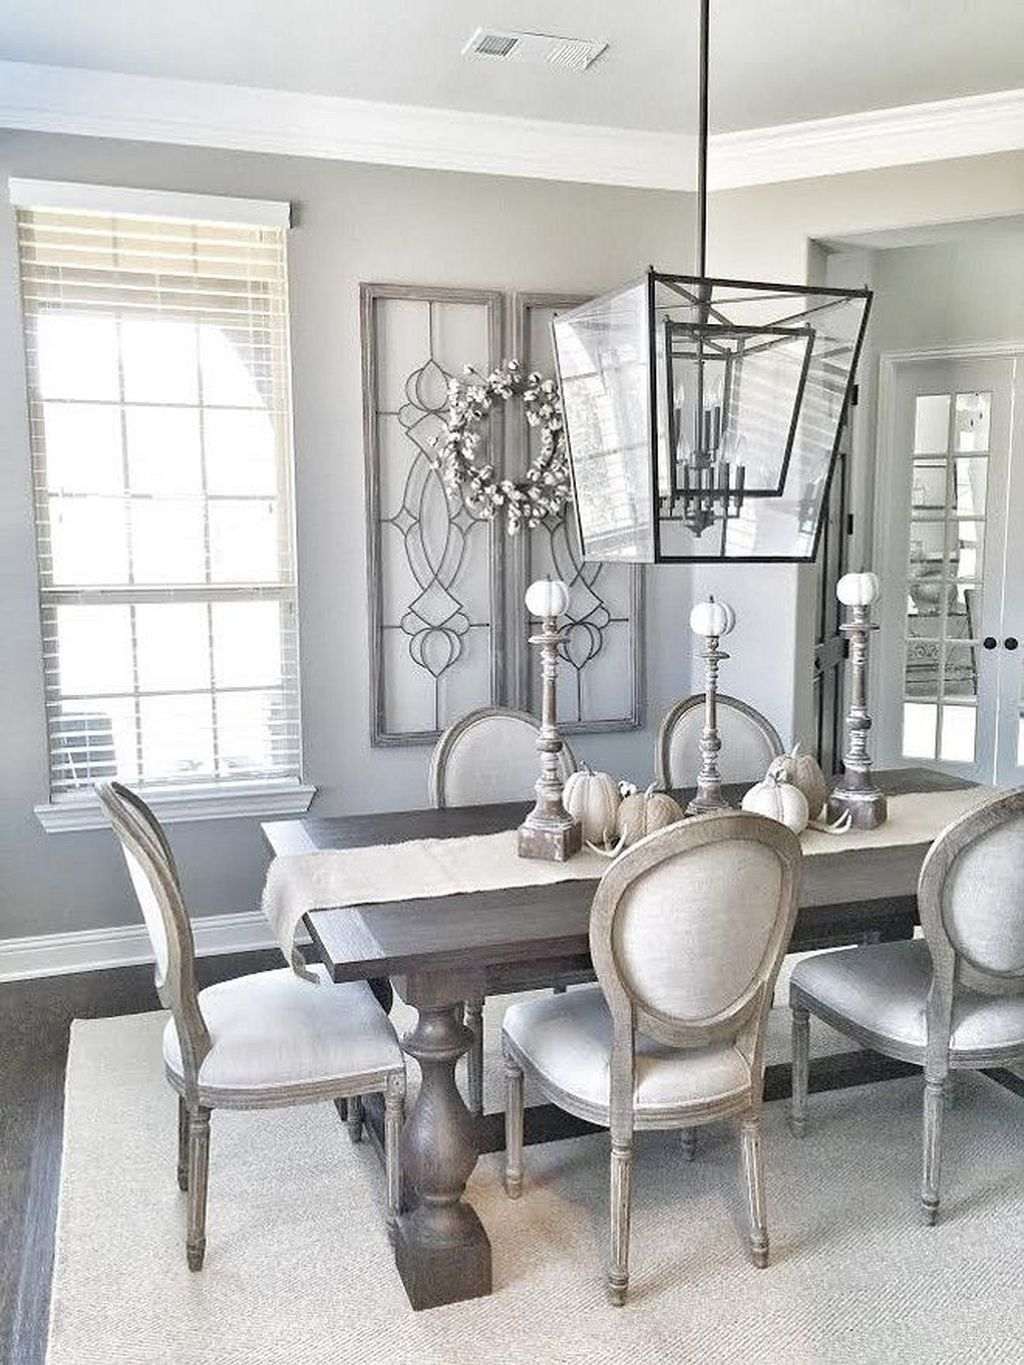 44 Inspiring Country Theme Dining Room Design With Farmhouse Table